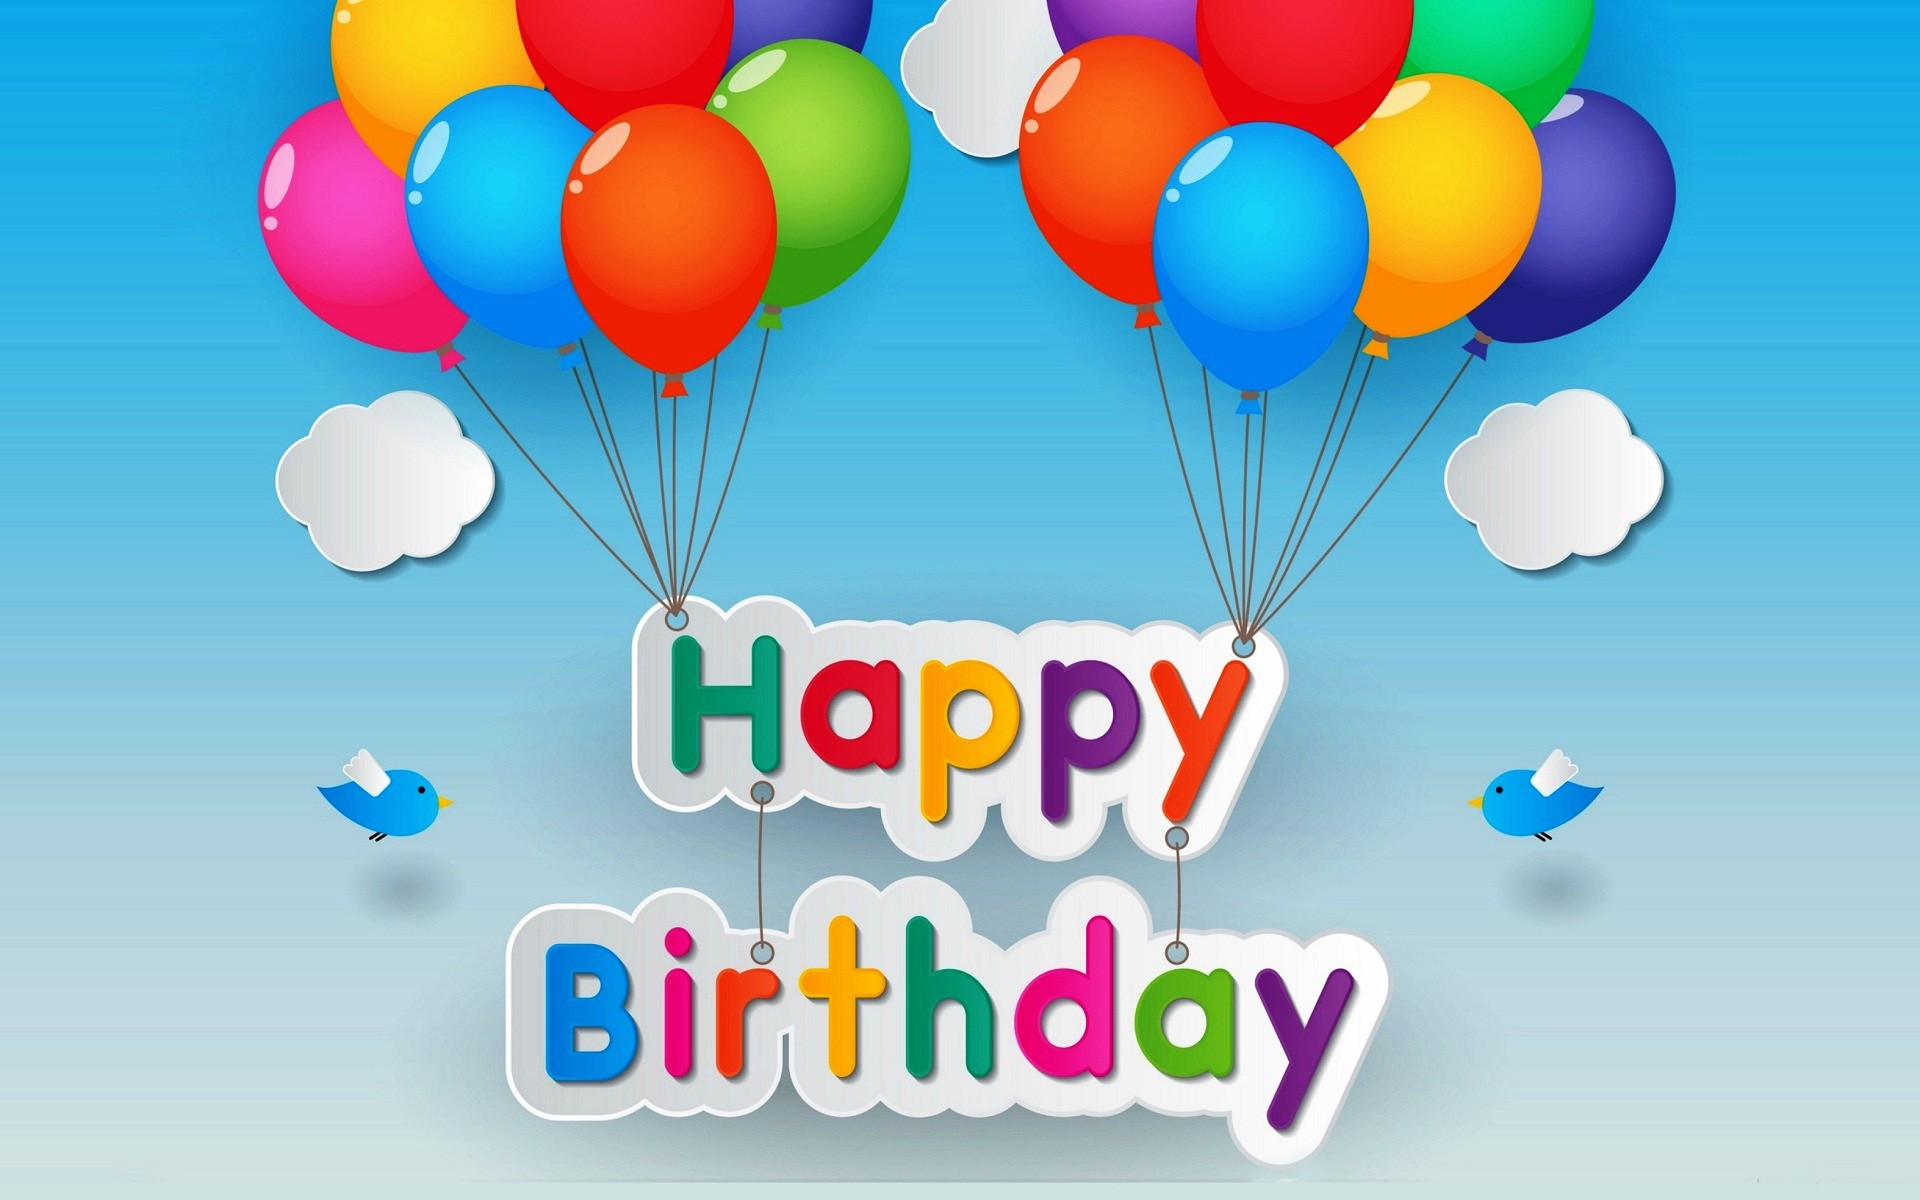 Happy birthday background pictures 45 images - Happy birthday wallpaper hd with name ...